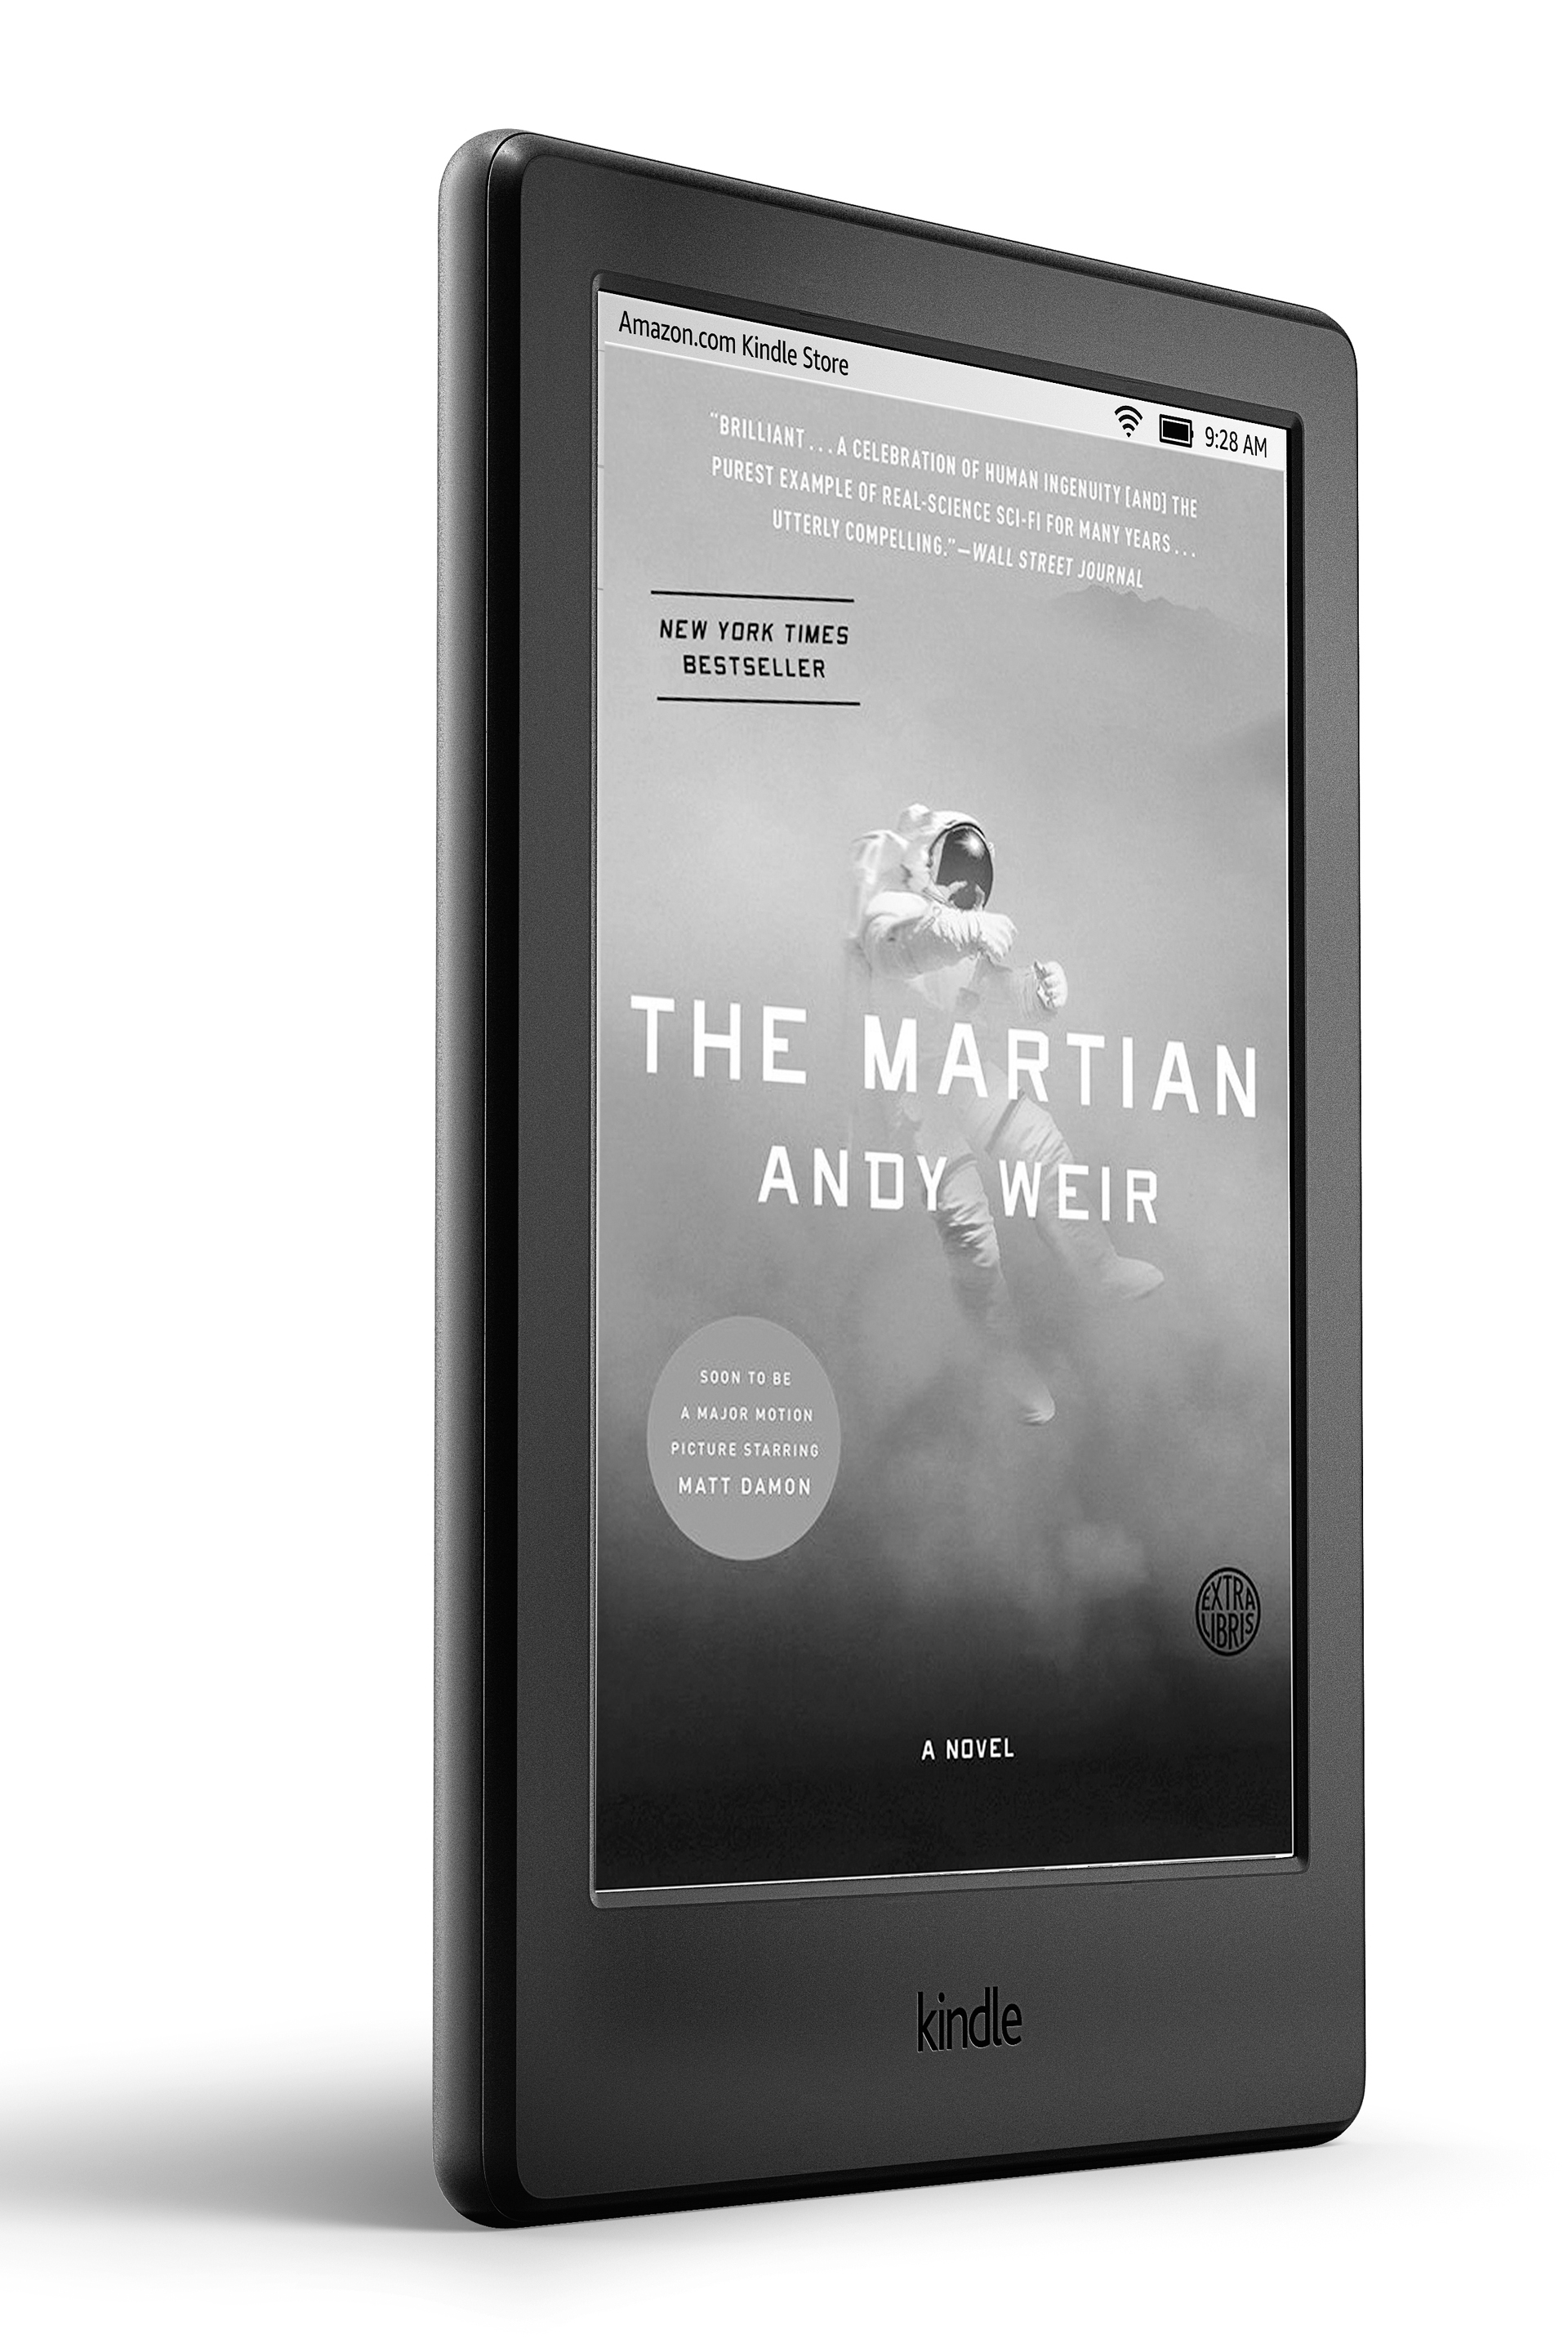 The Martian book on Kindle device.